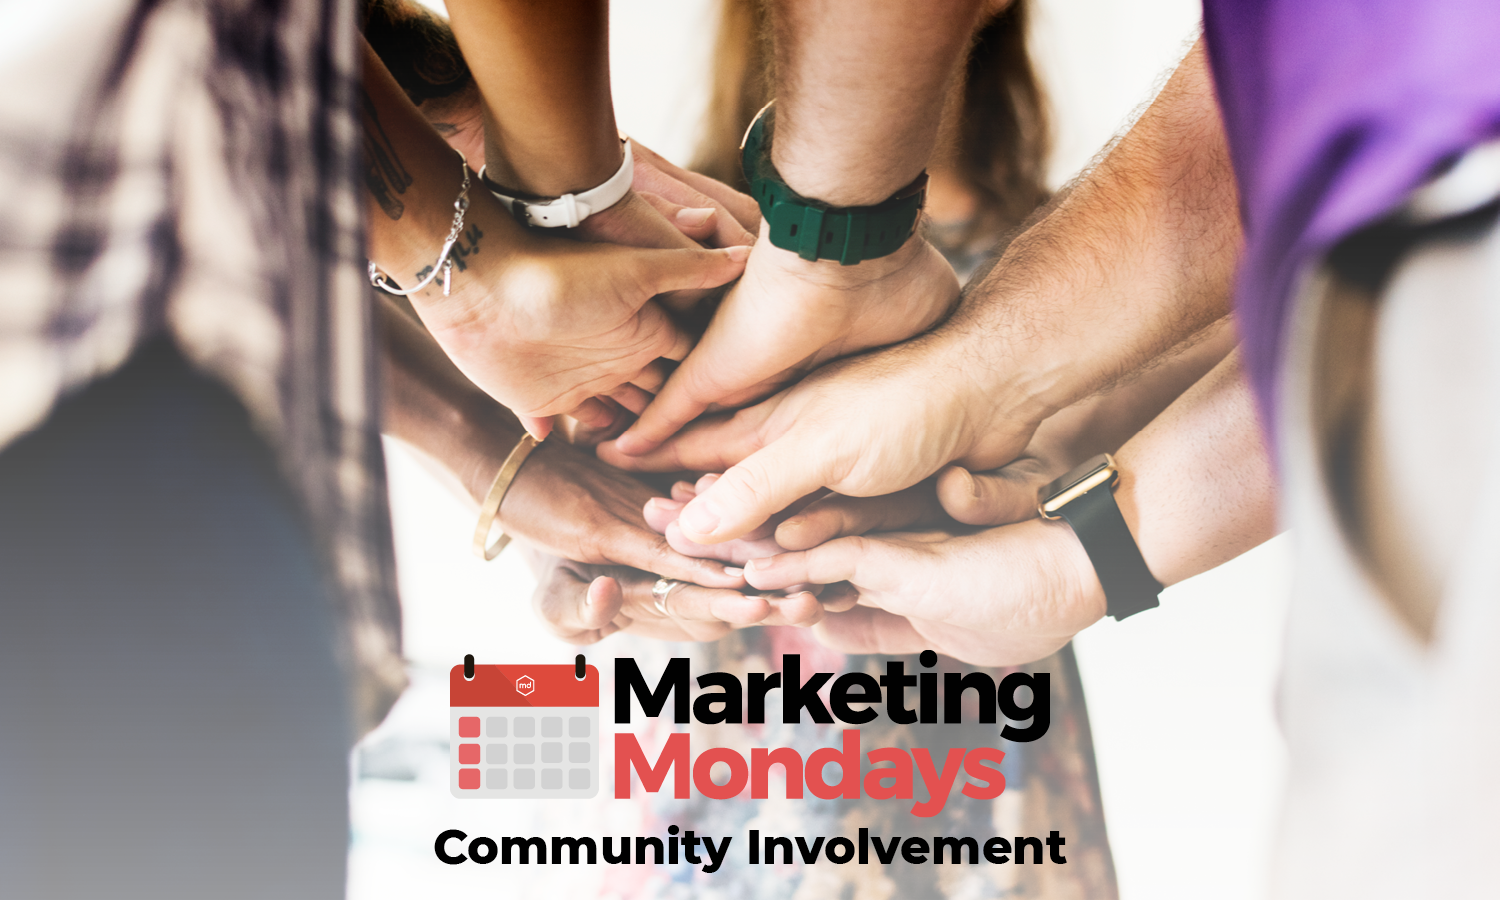 Marketing Mondays: Community Involvement